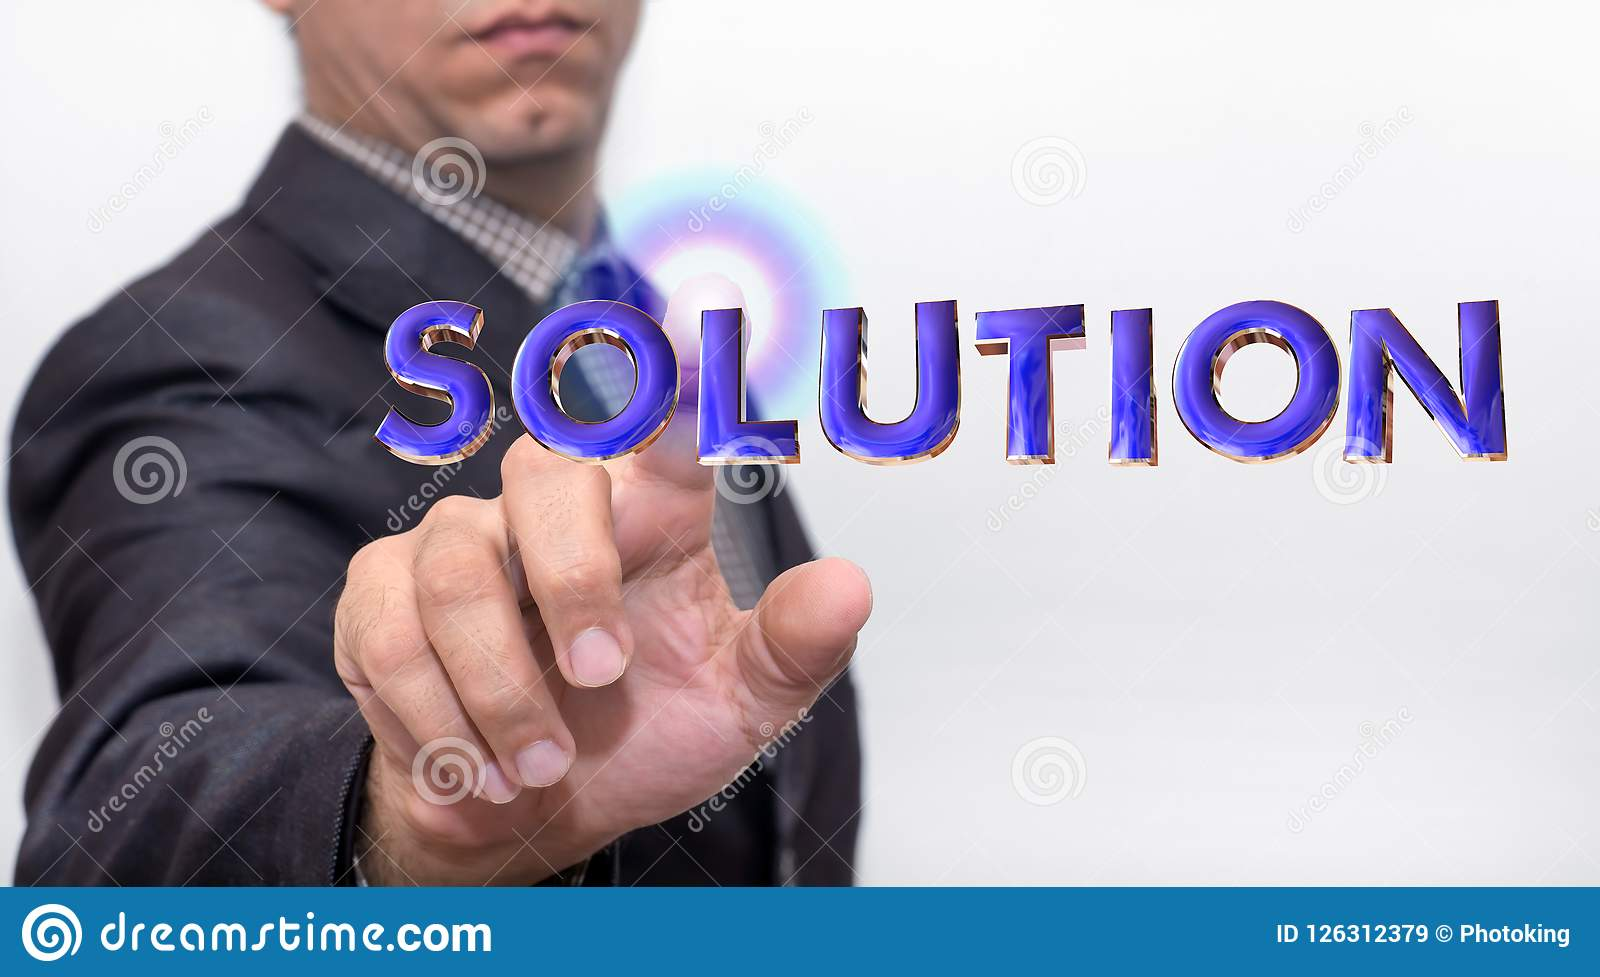 Touching solution word on air